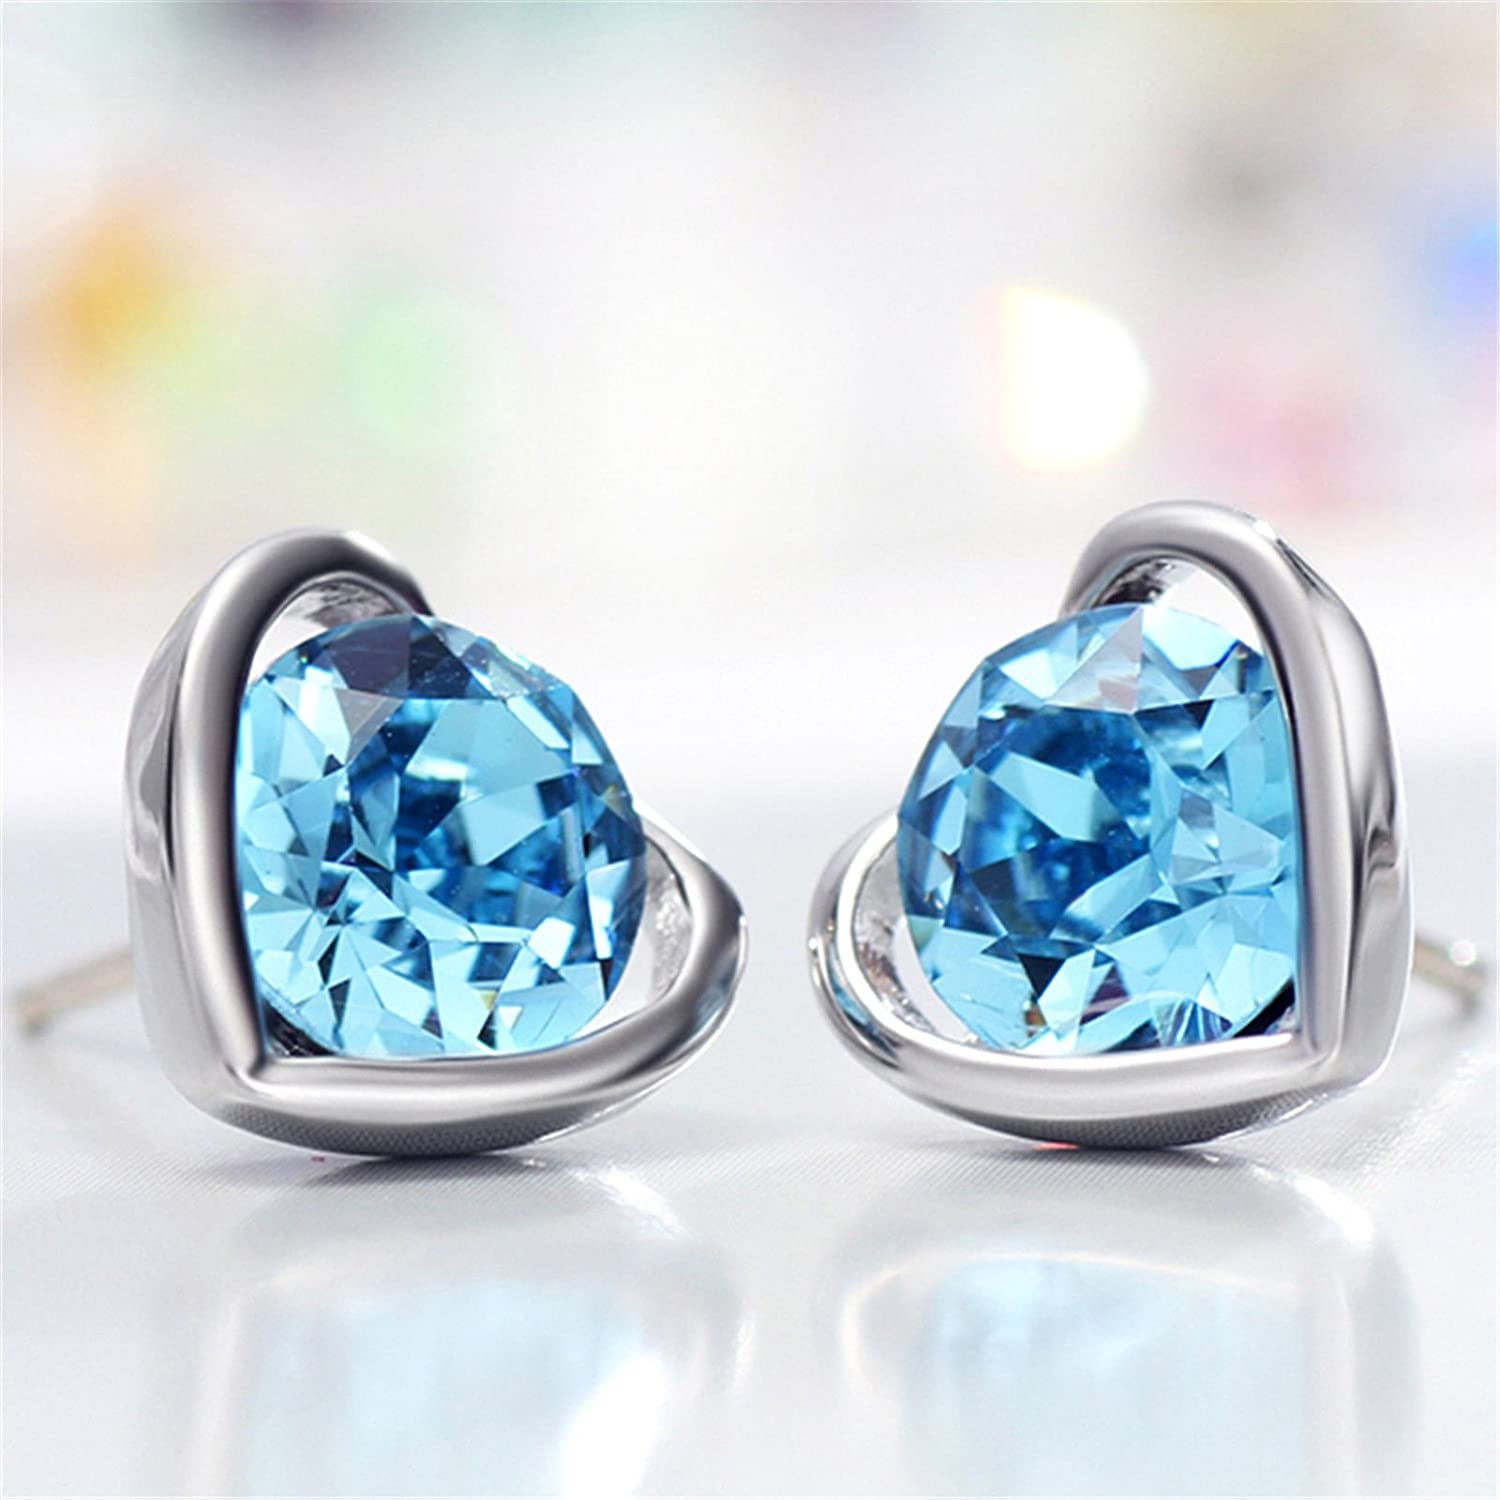 Neoglory Rhinestone Fashion Blue Love Heart Stud Earrings Jewelry for Women Girl Christmas Gifts